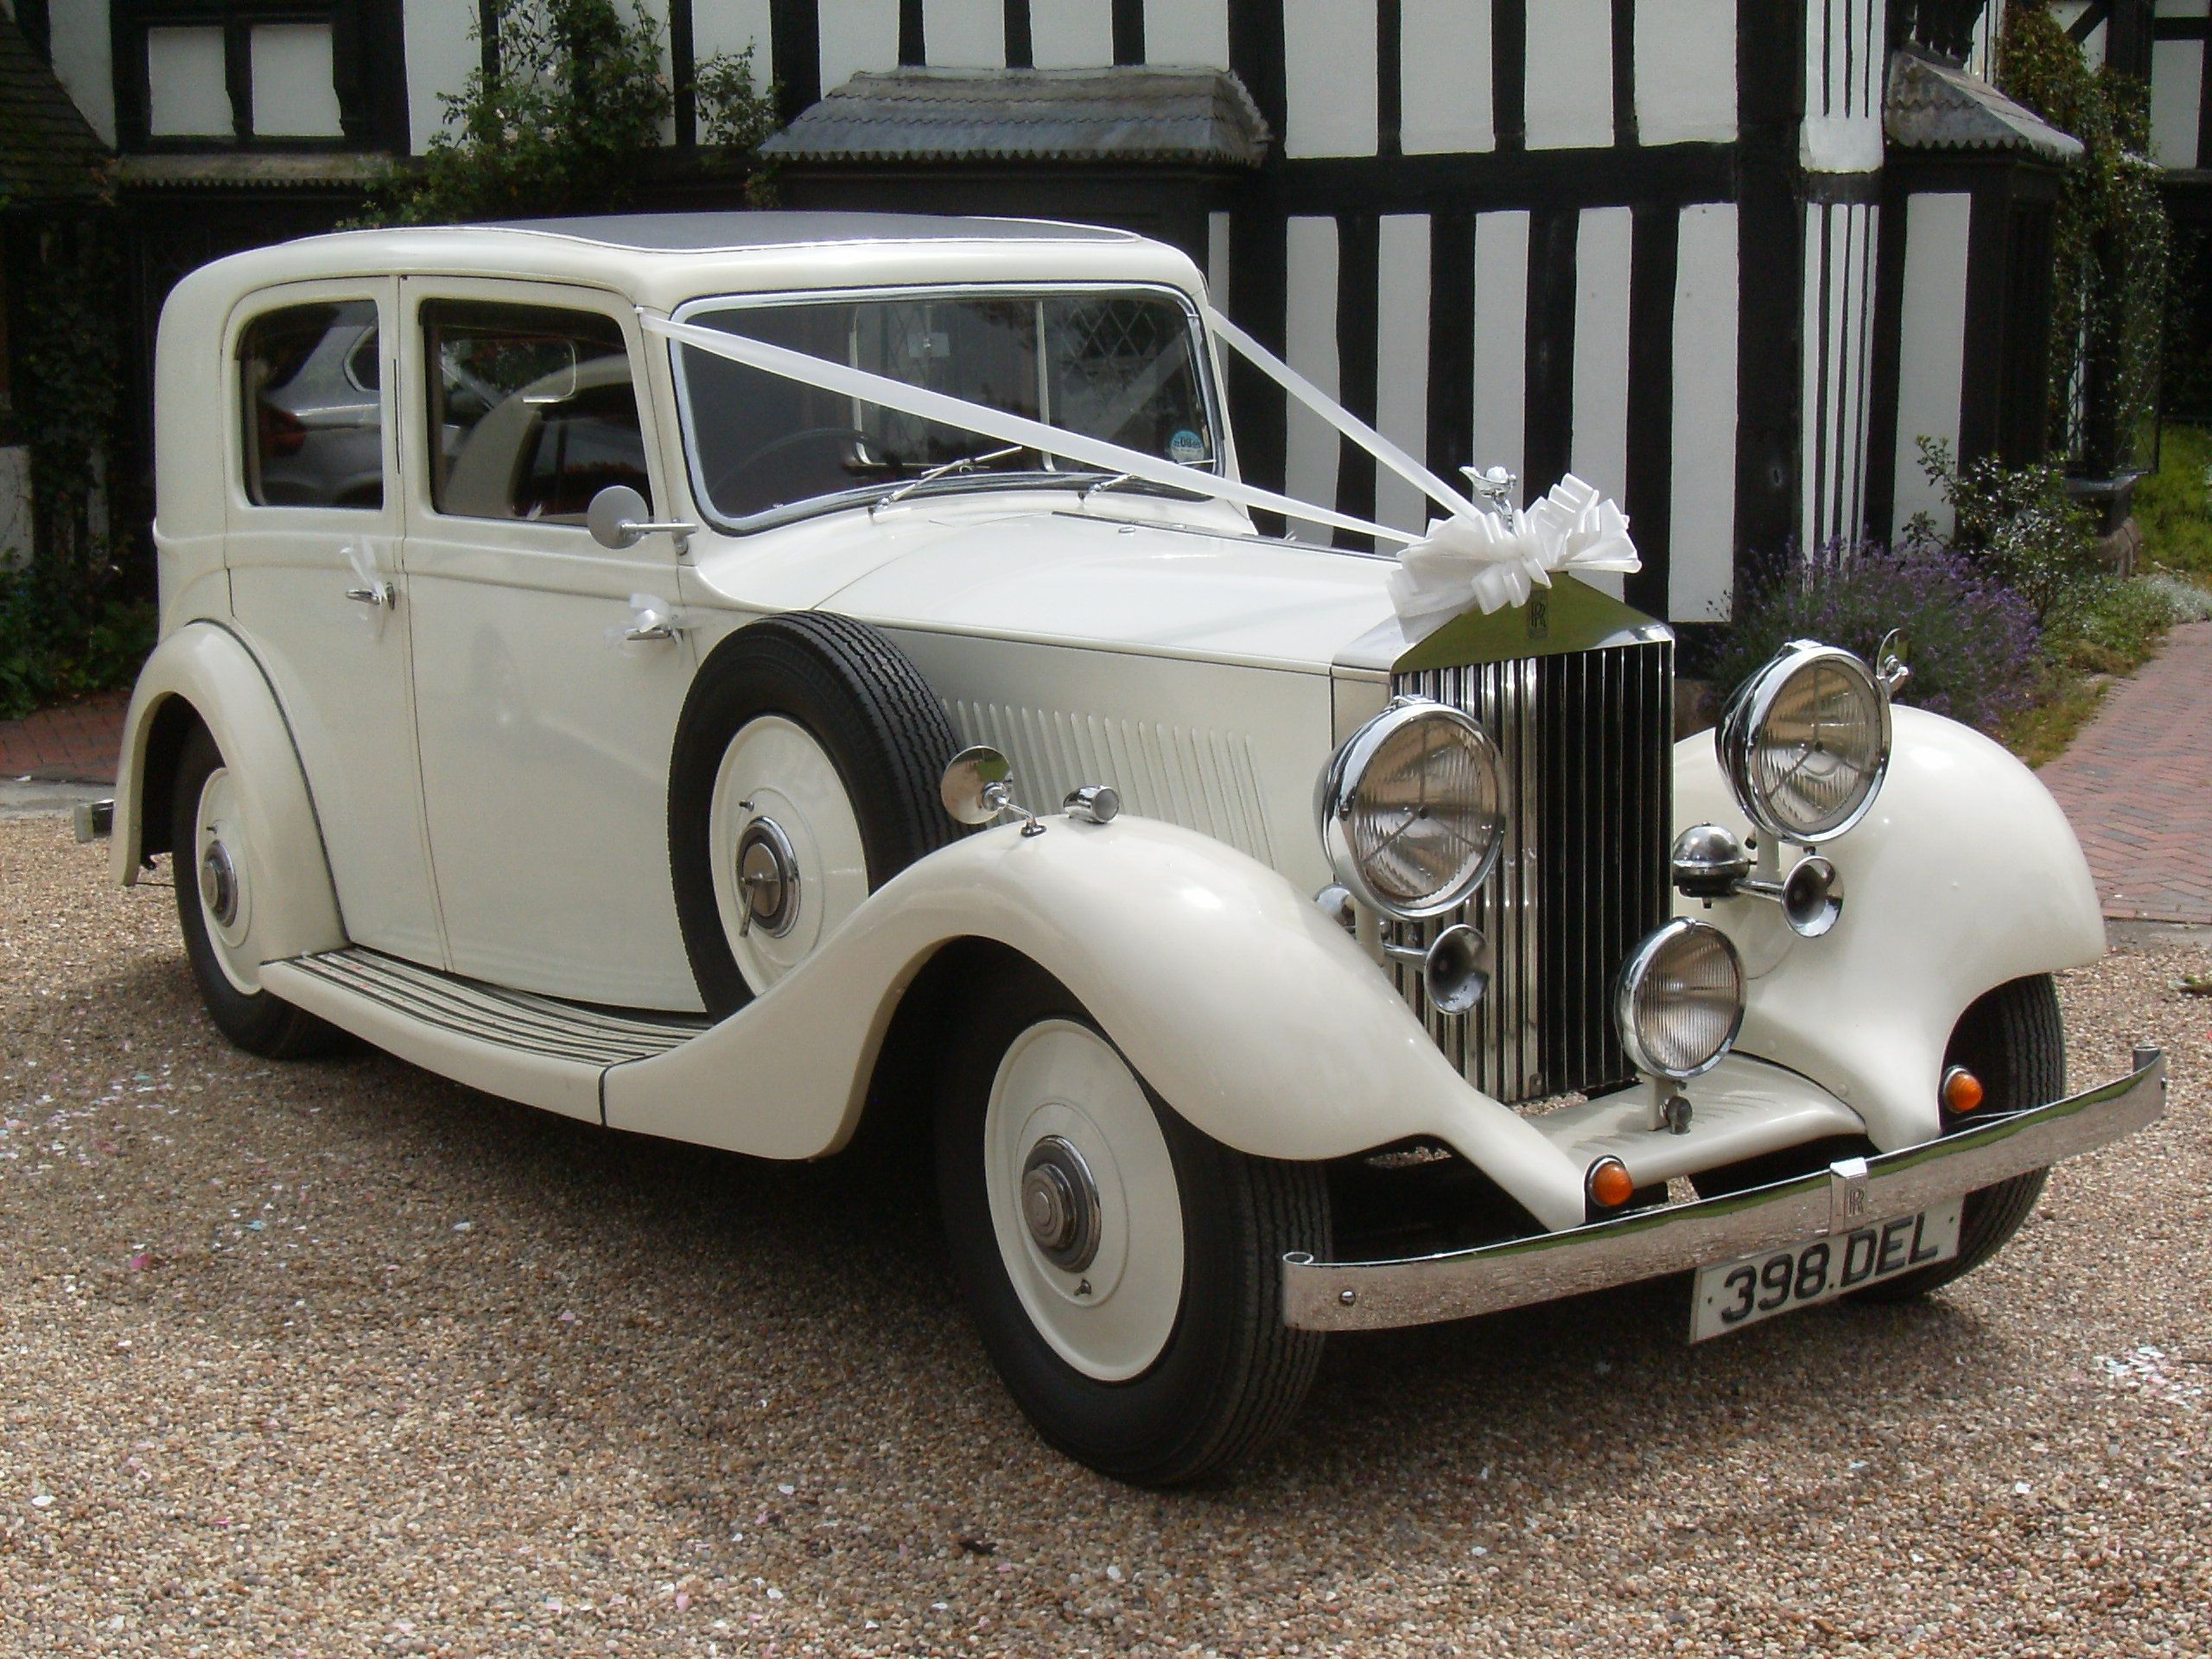 1936 Rolls Royce Hooper Limousine Astons Cars With Images Auto